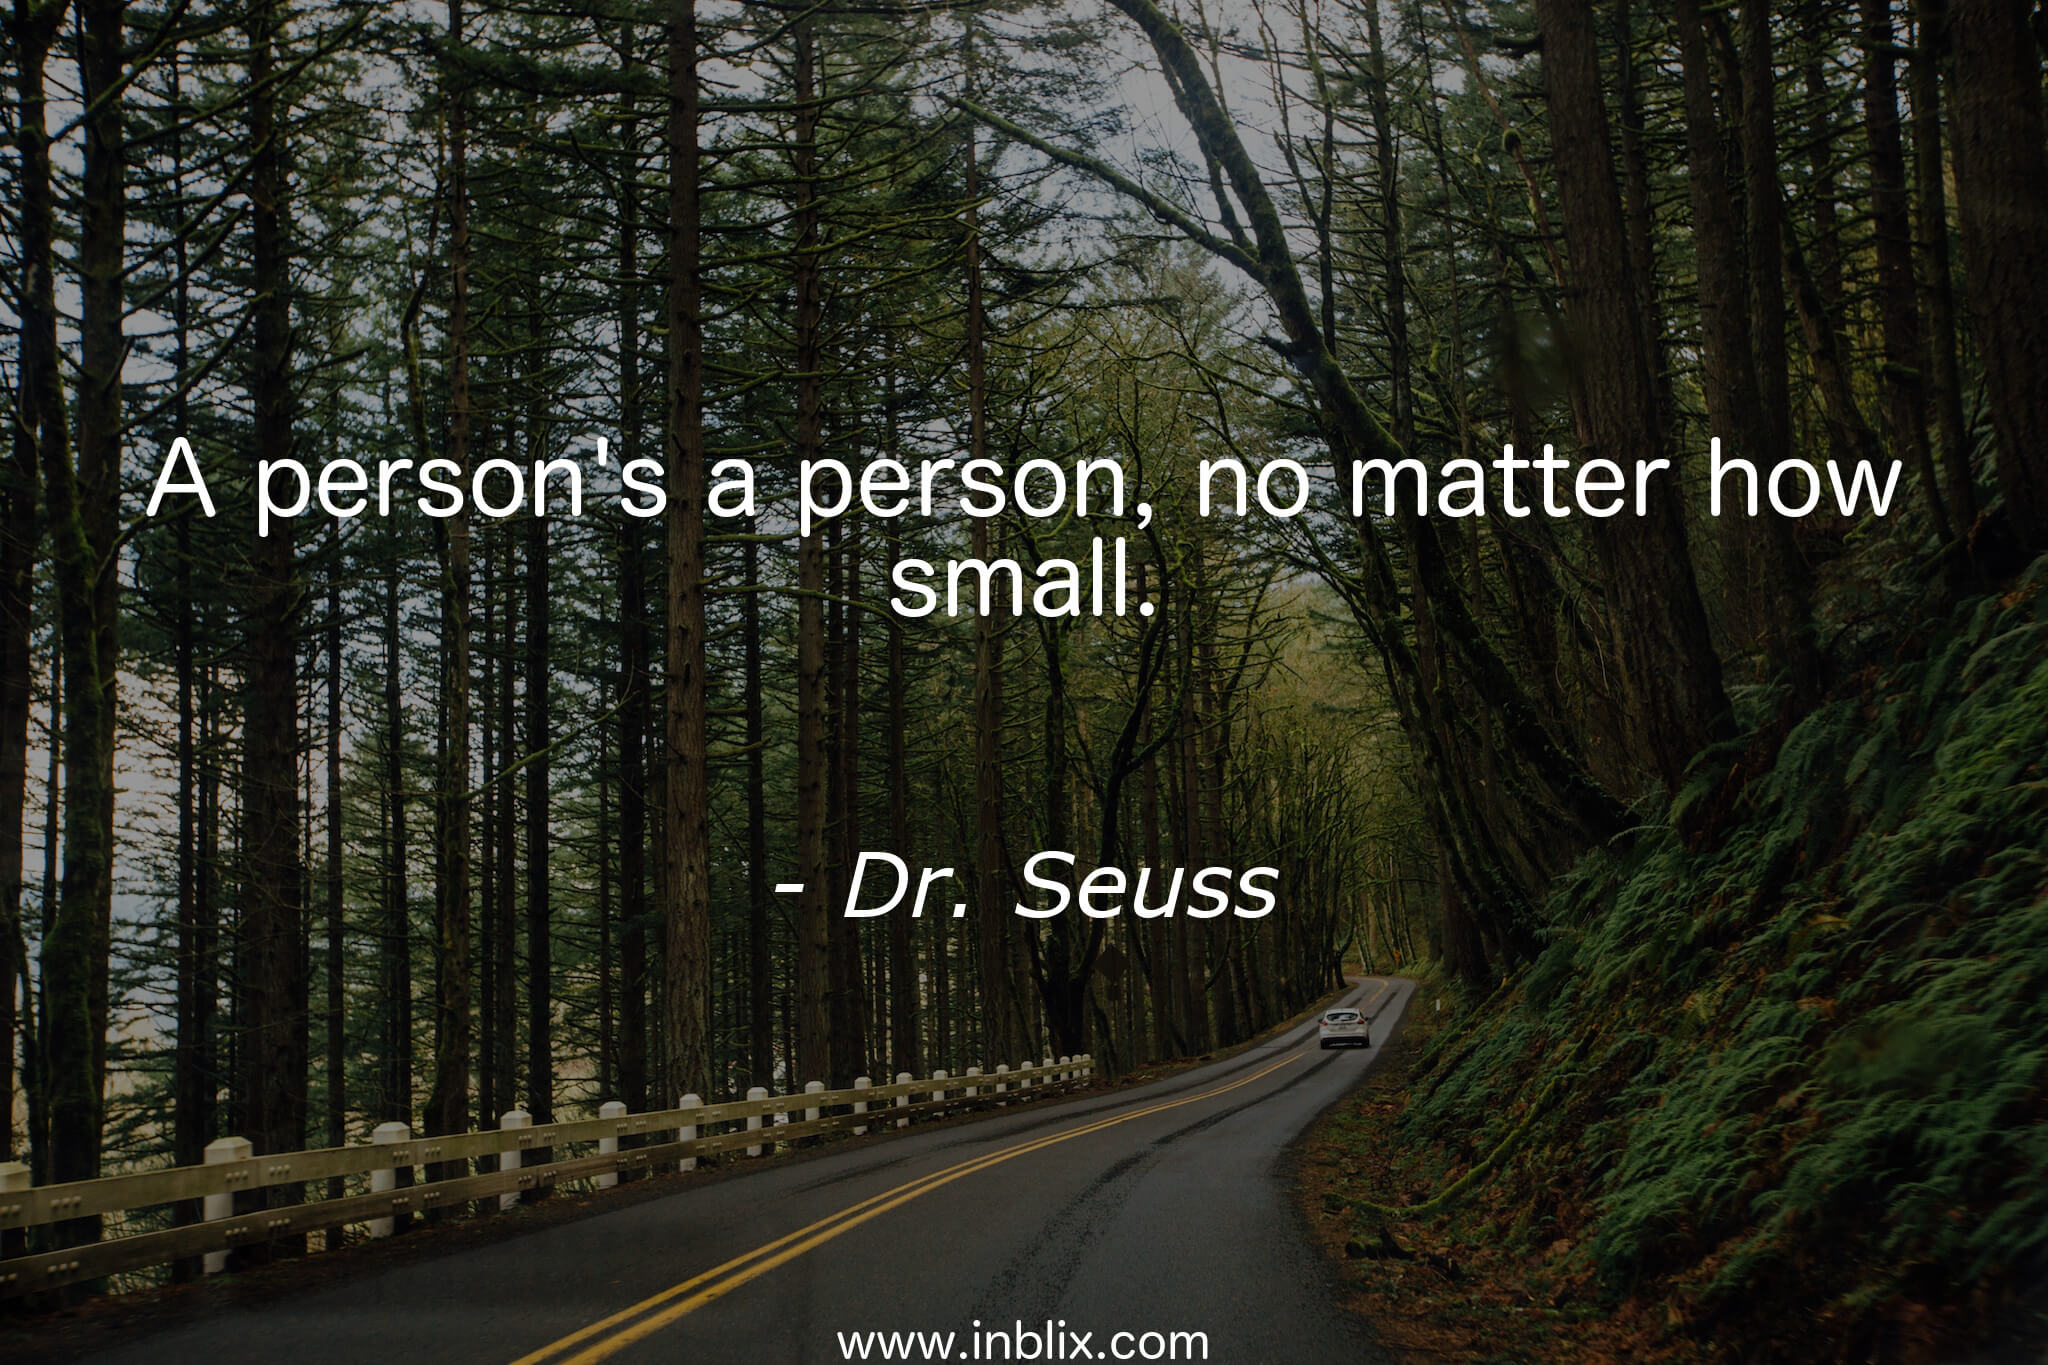 A person's a person, no matter how small.